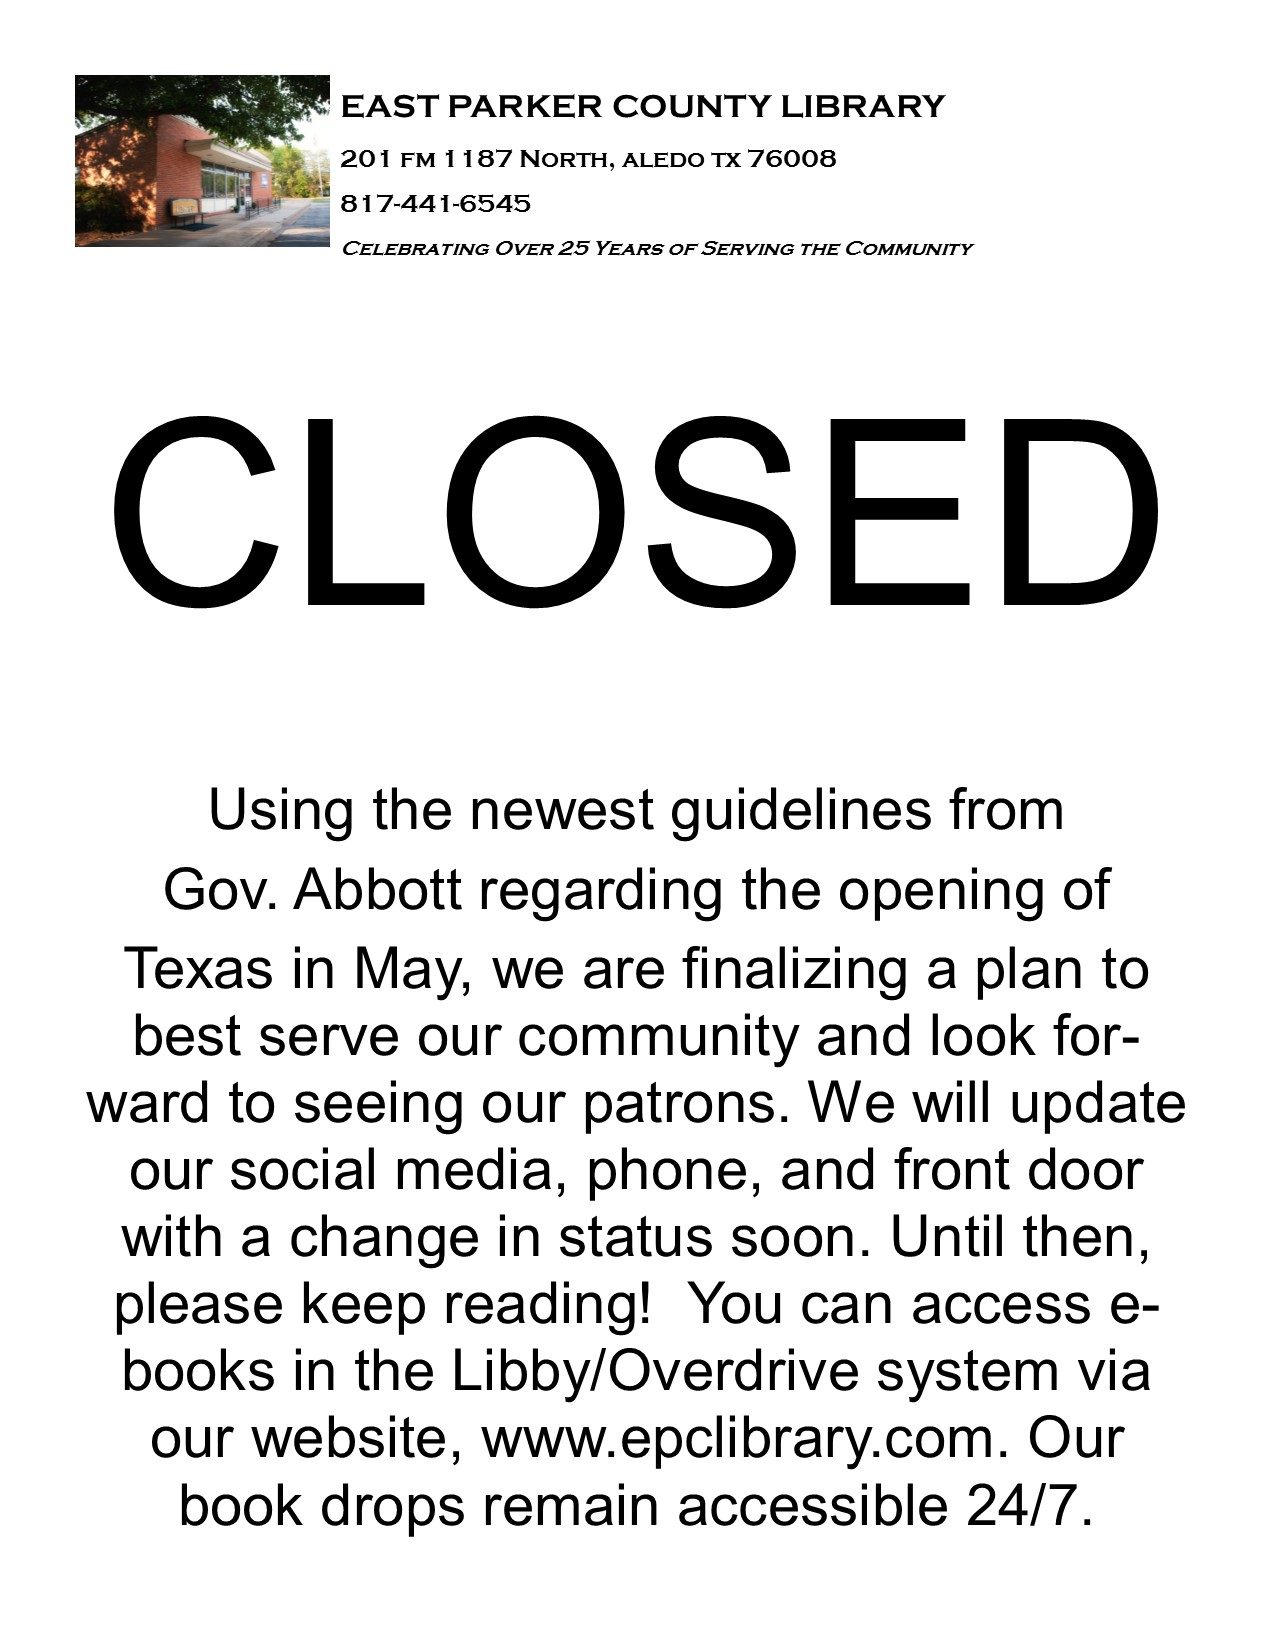 closure notice May 1.jpg